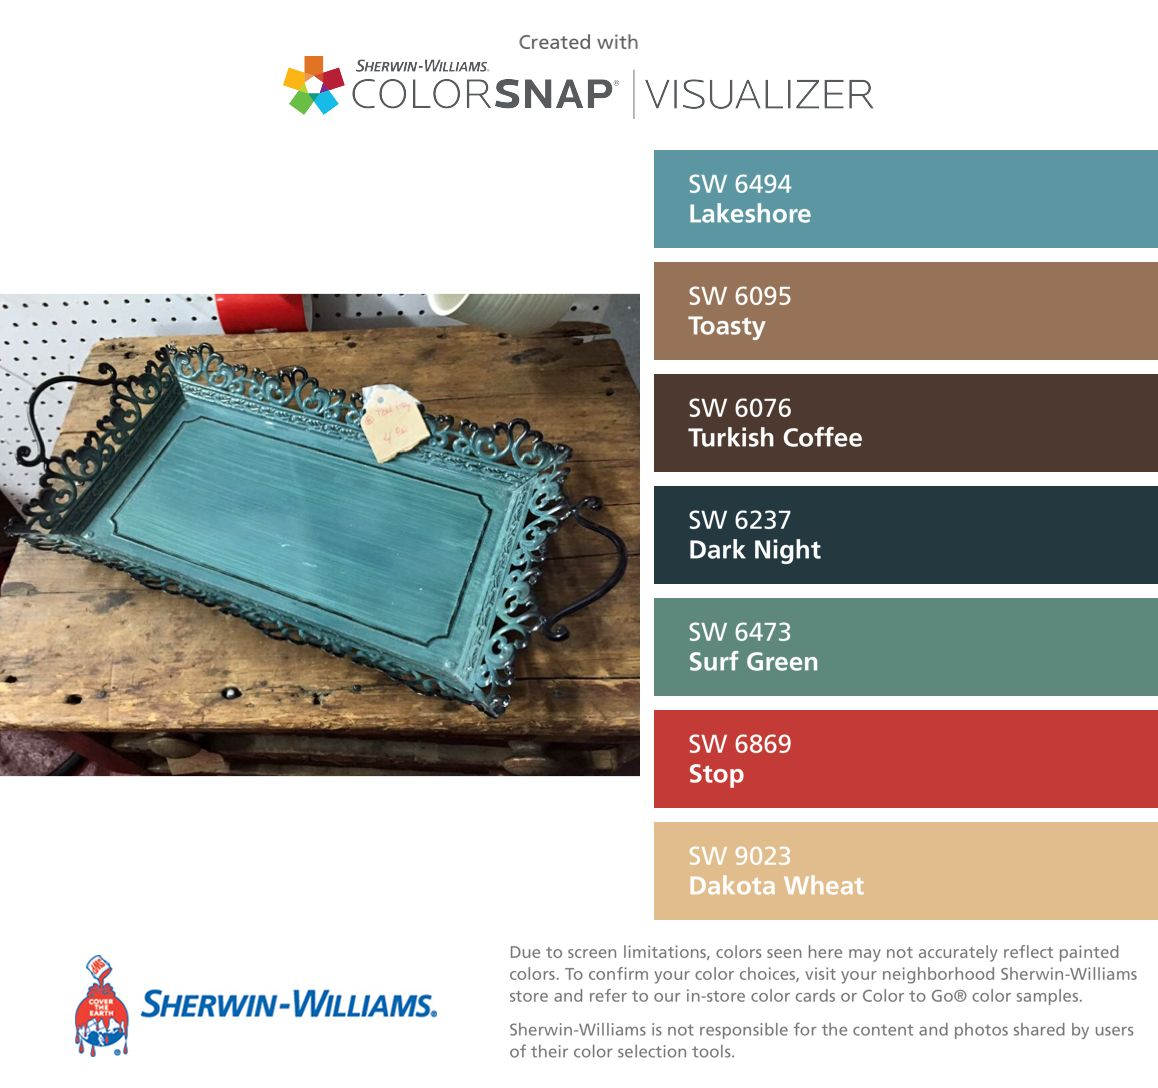 I Found These Colors With Colorsnap Visualizer For Iphone By Sherwin Williams Lakeshore Sw 649 Paint Color App Paint Color Inspiration Matching Paint Colors